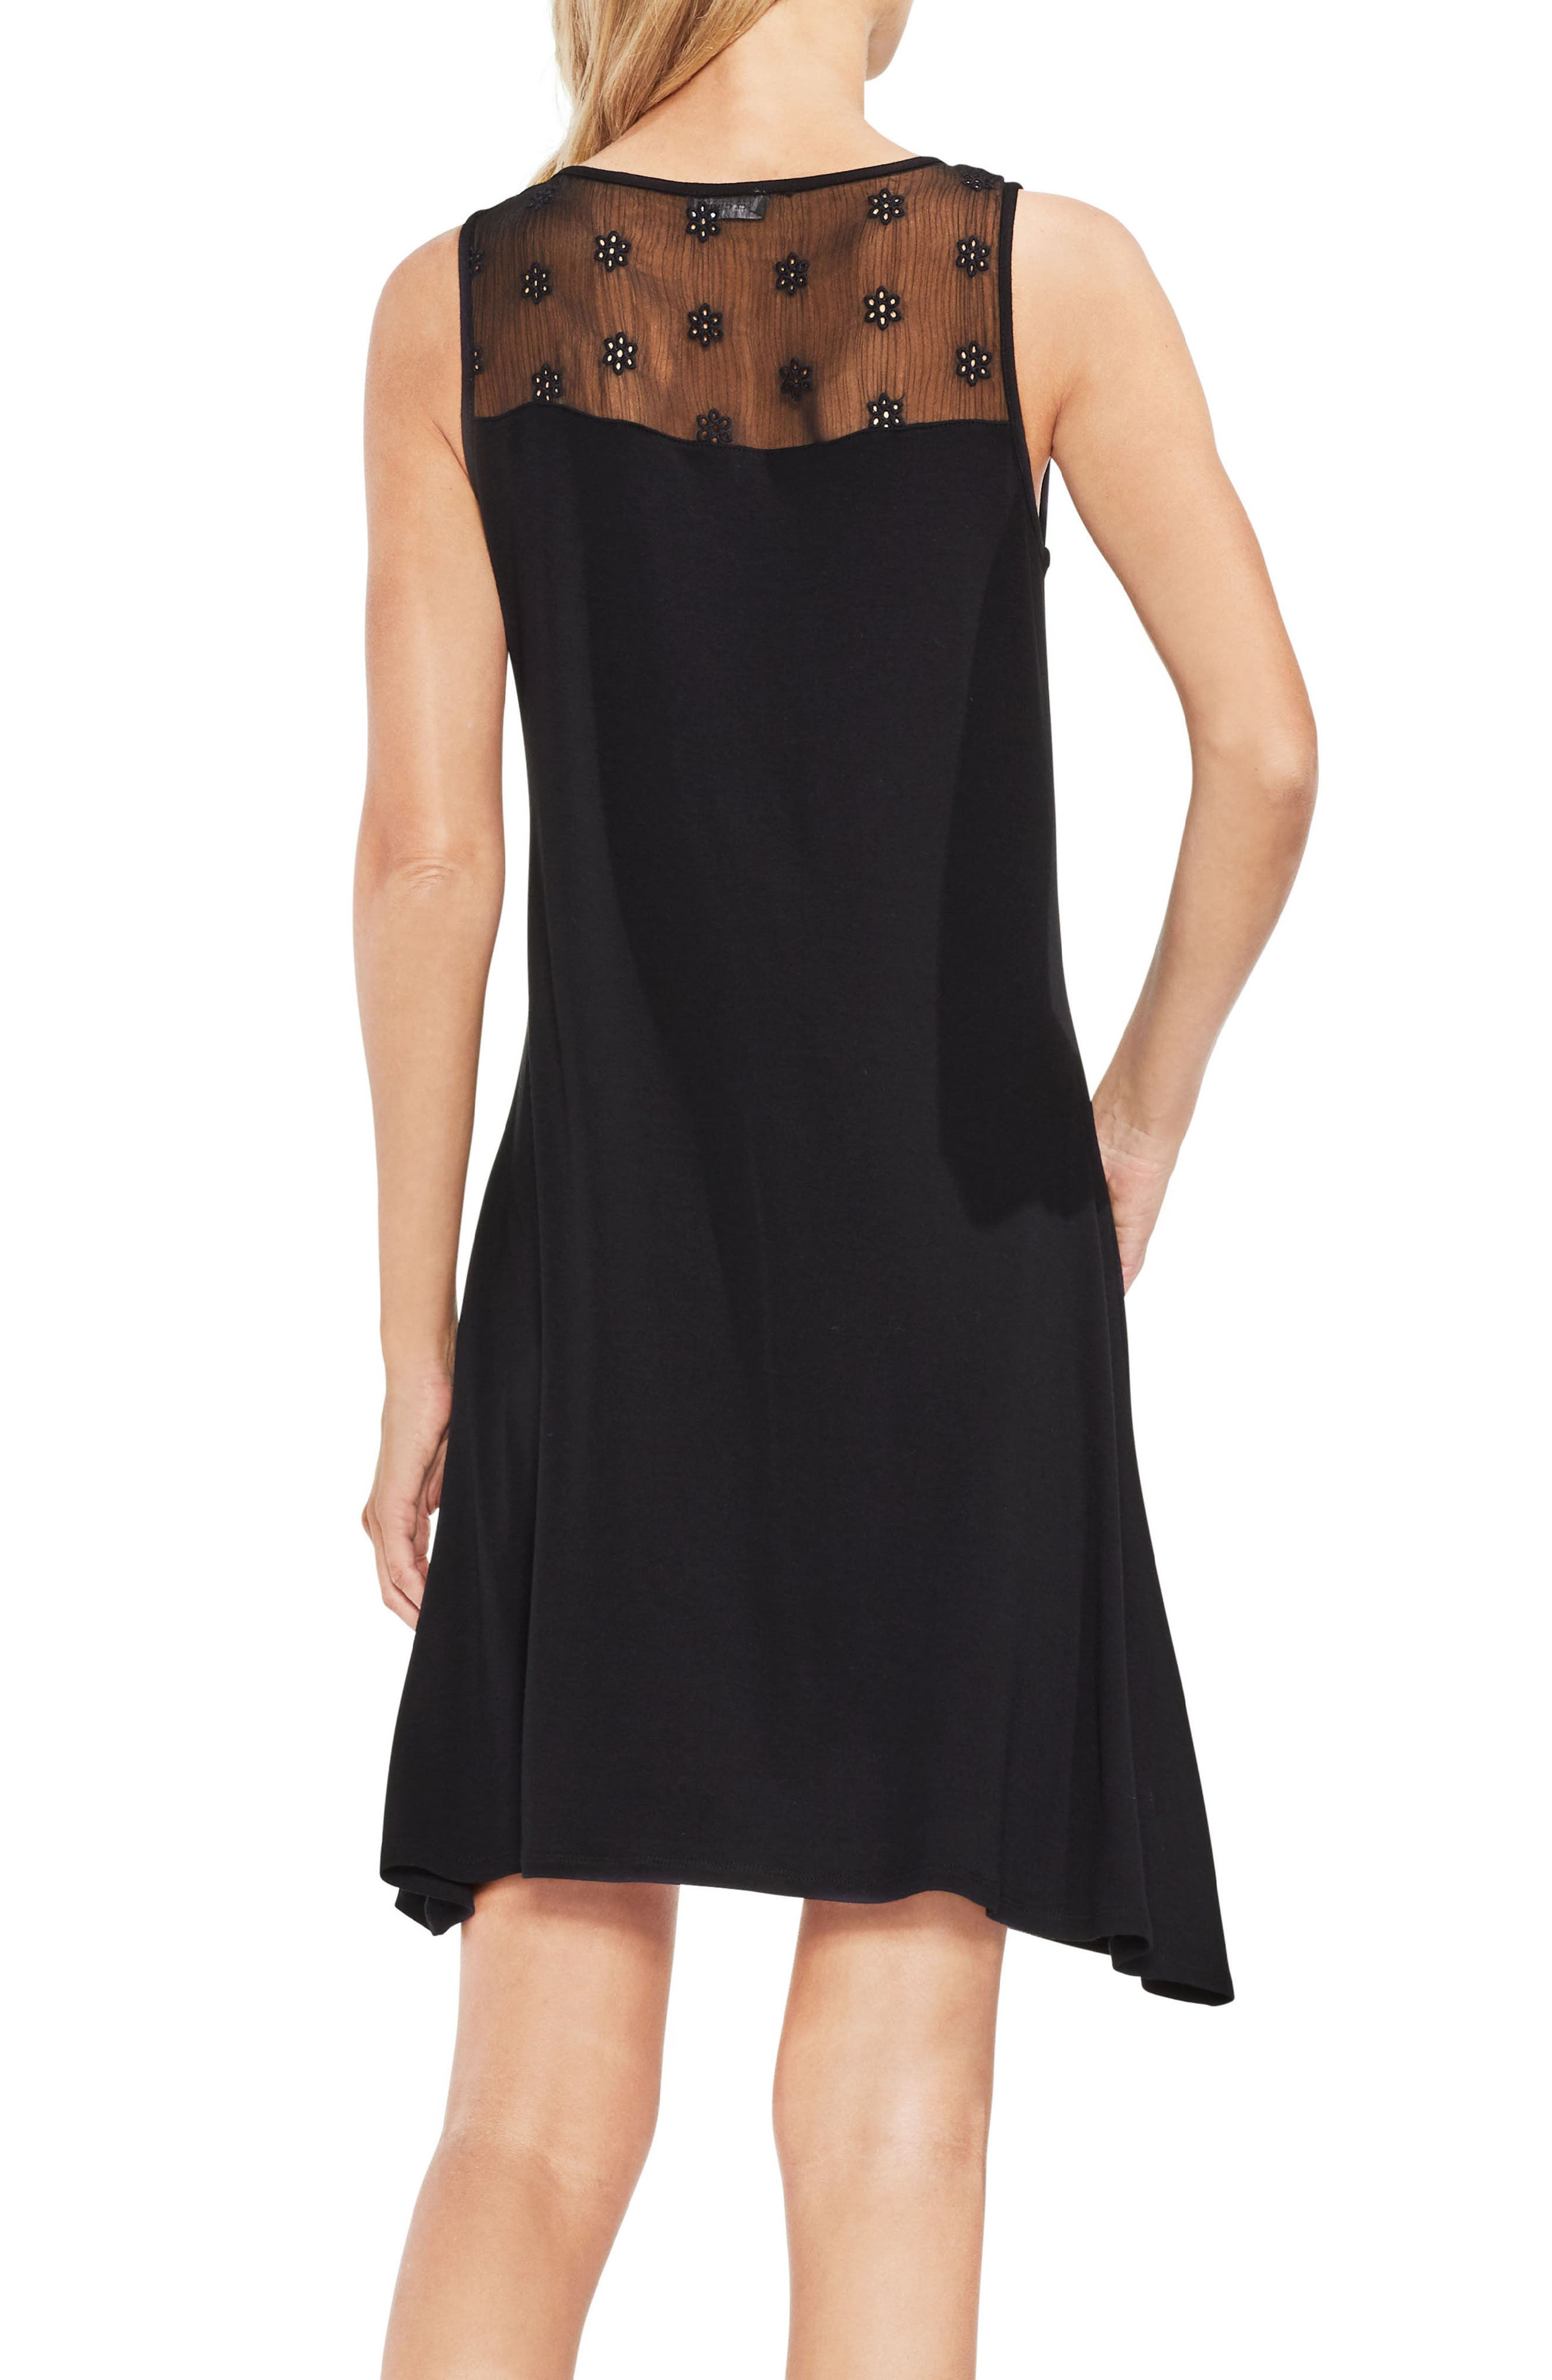 VINCE CAMUTO,                             Eyelet Panel Dress,                             Alternate thumbnail 2, color,                             001